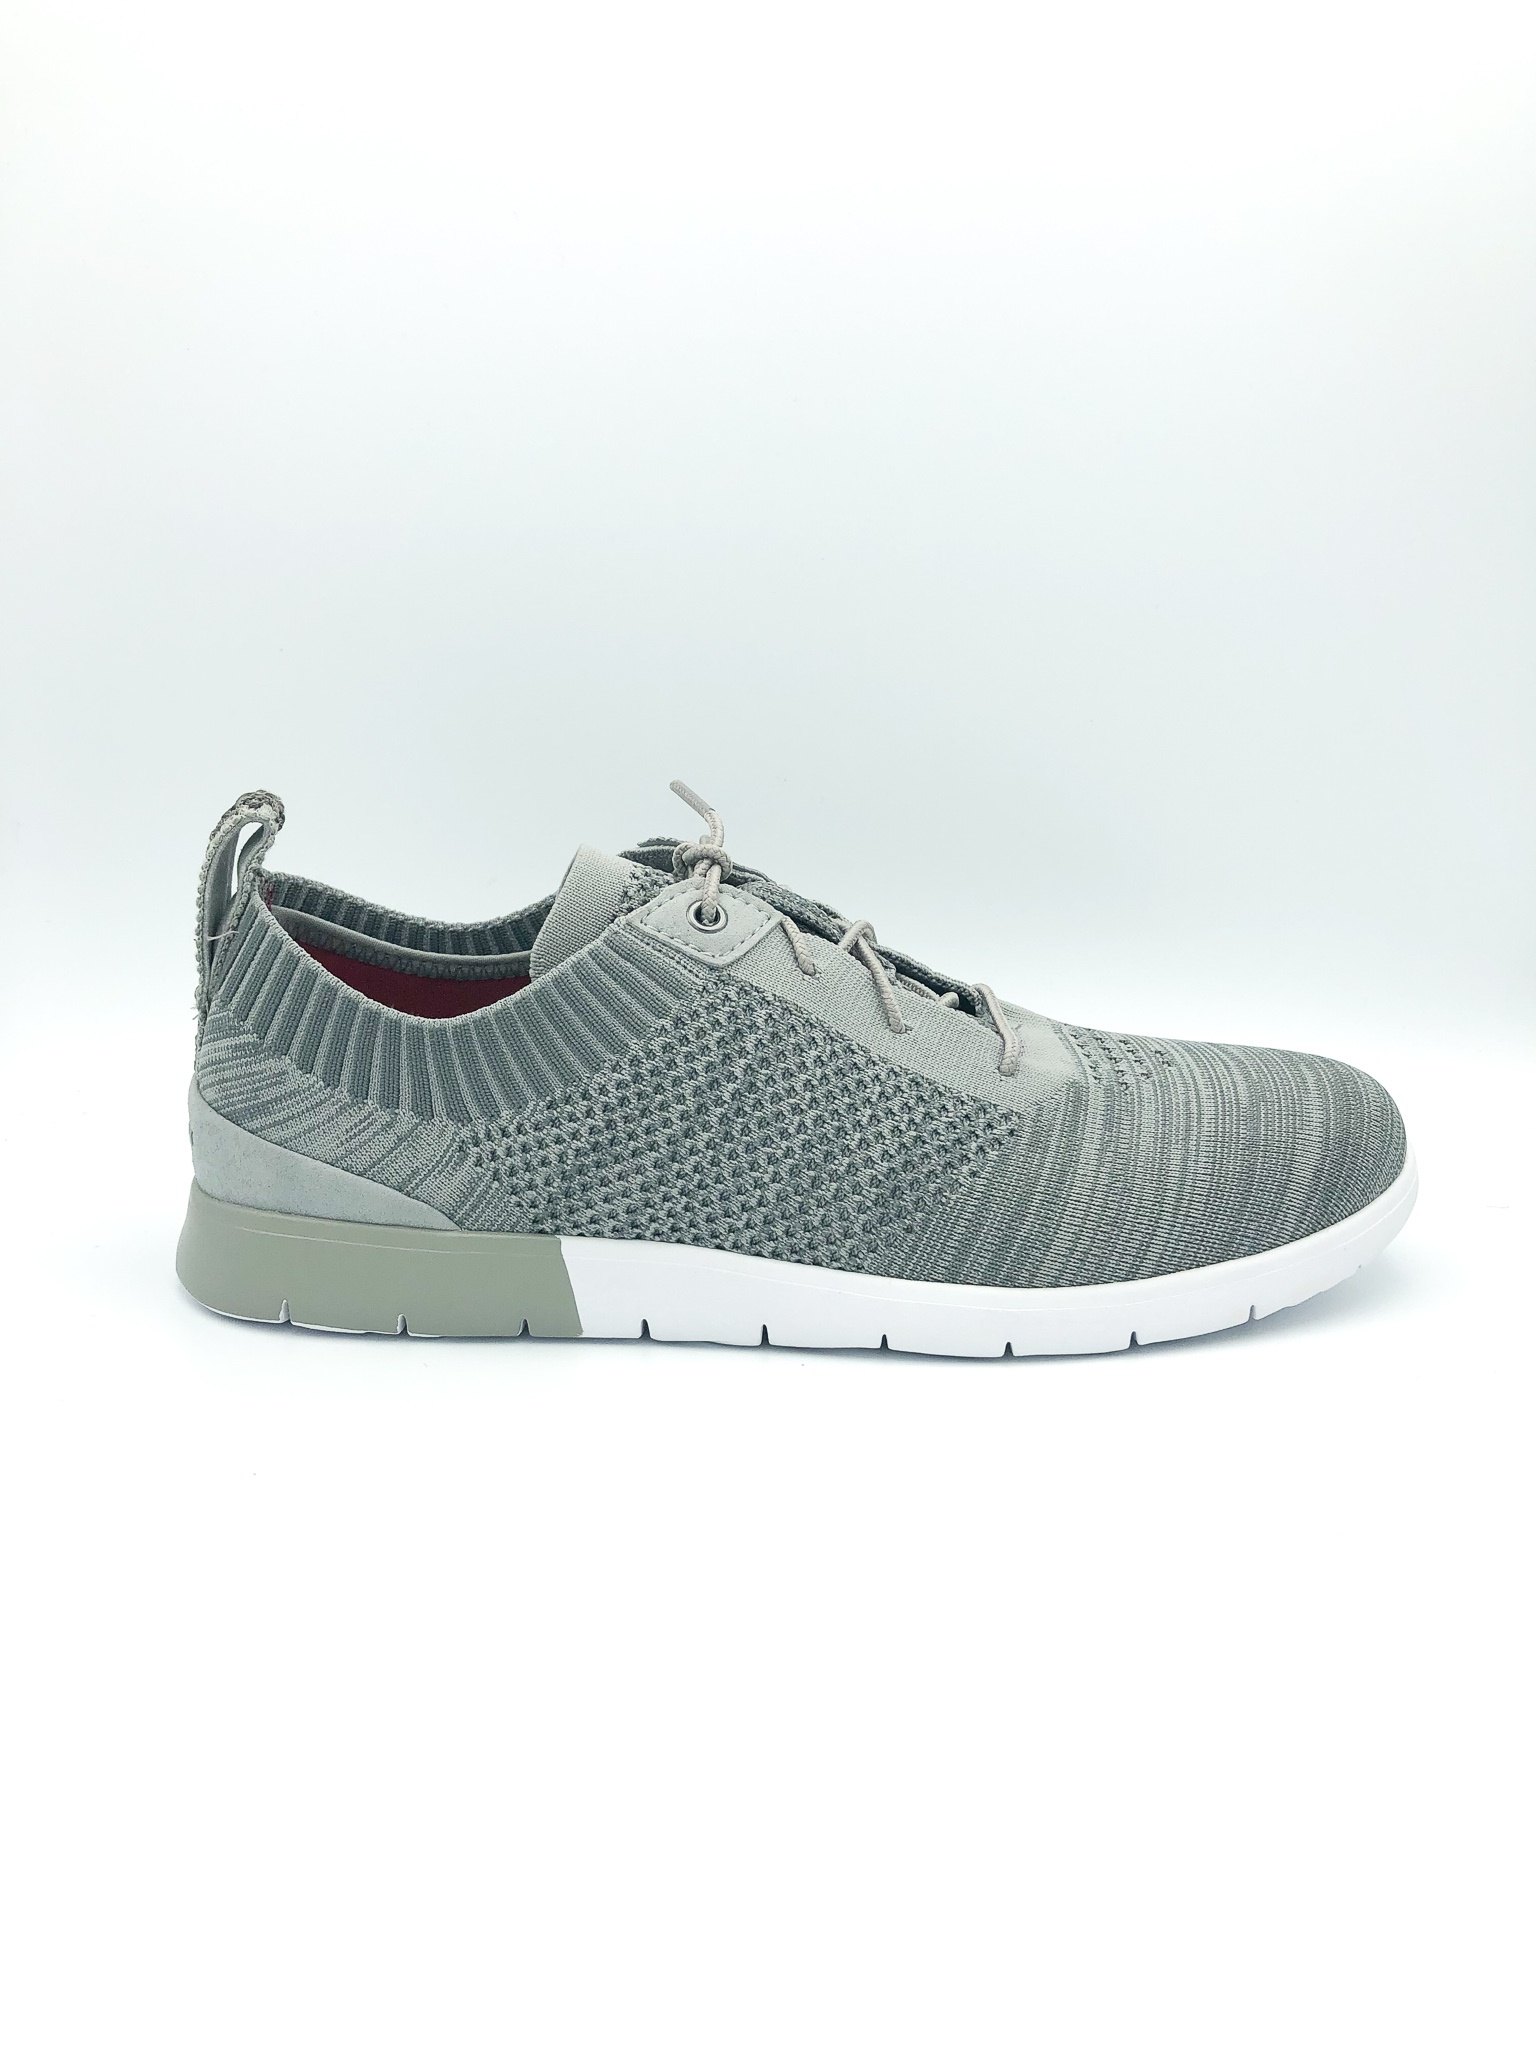 factory price 84ea0 aacc7 UGG- FELI HYPERWEAVE 2.0 IN GREY - the Urban Shoe Myth